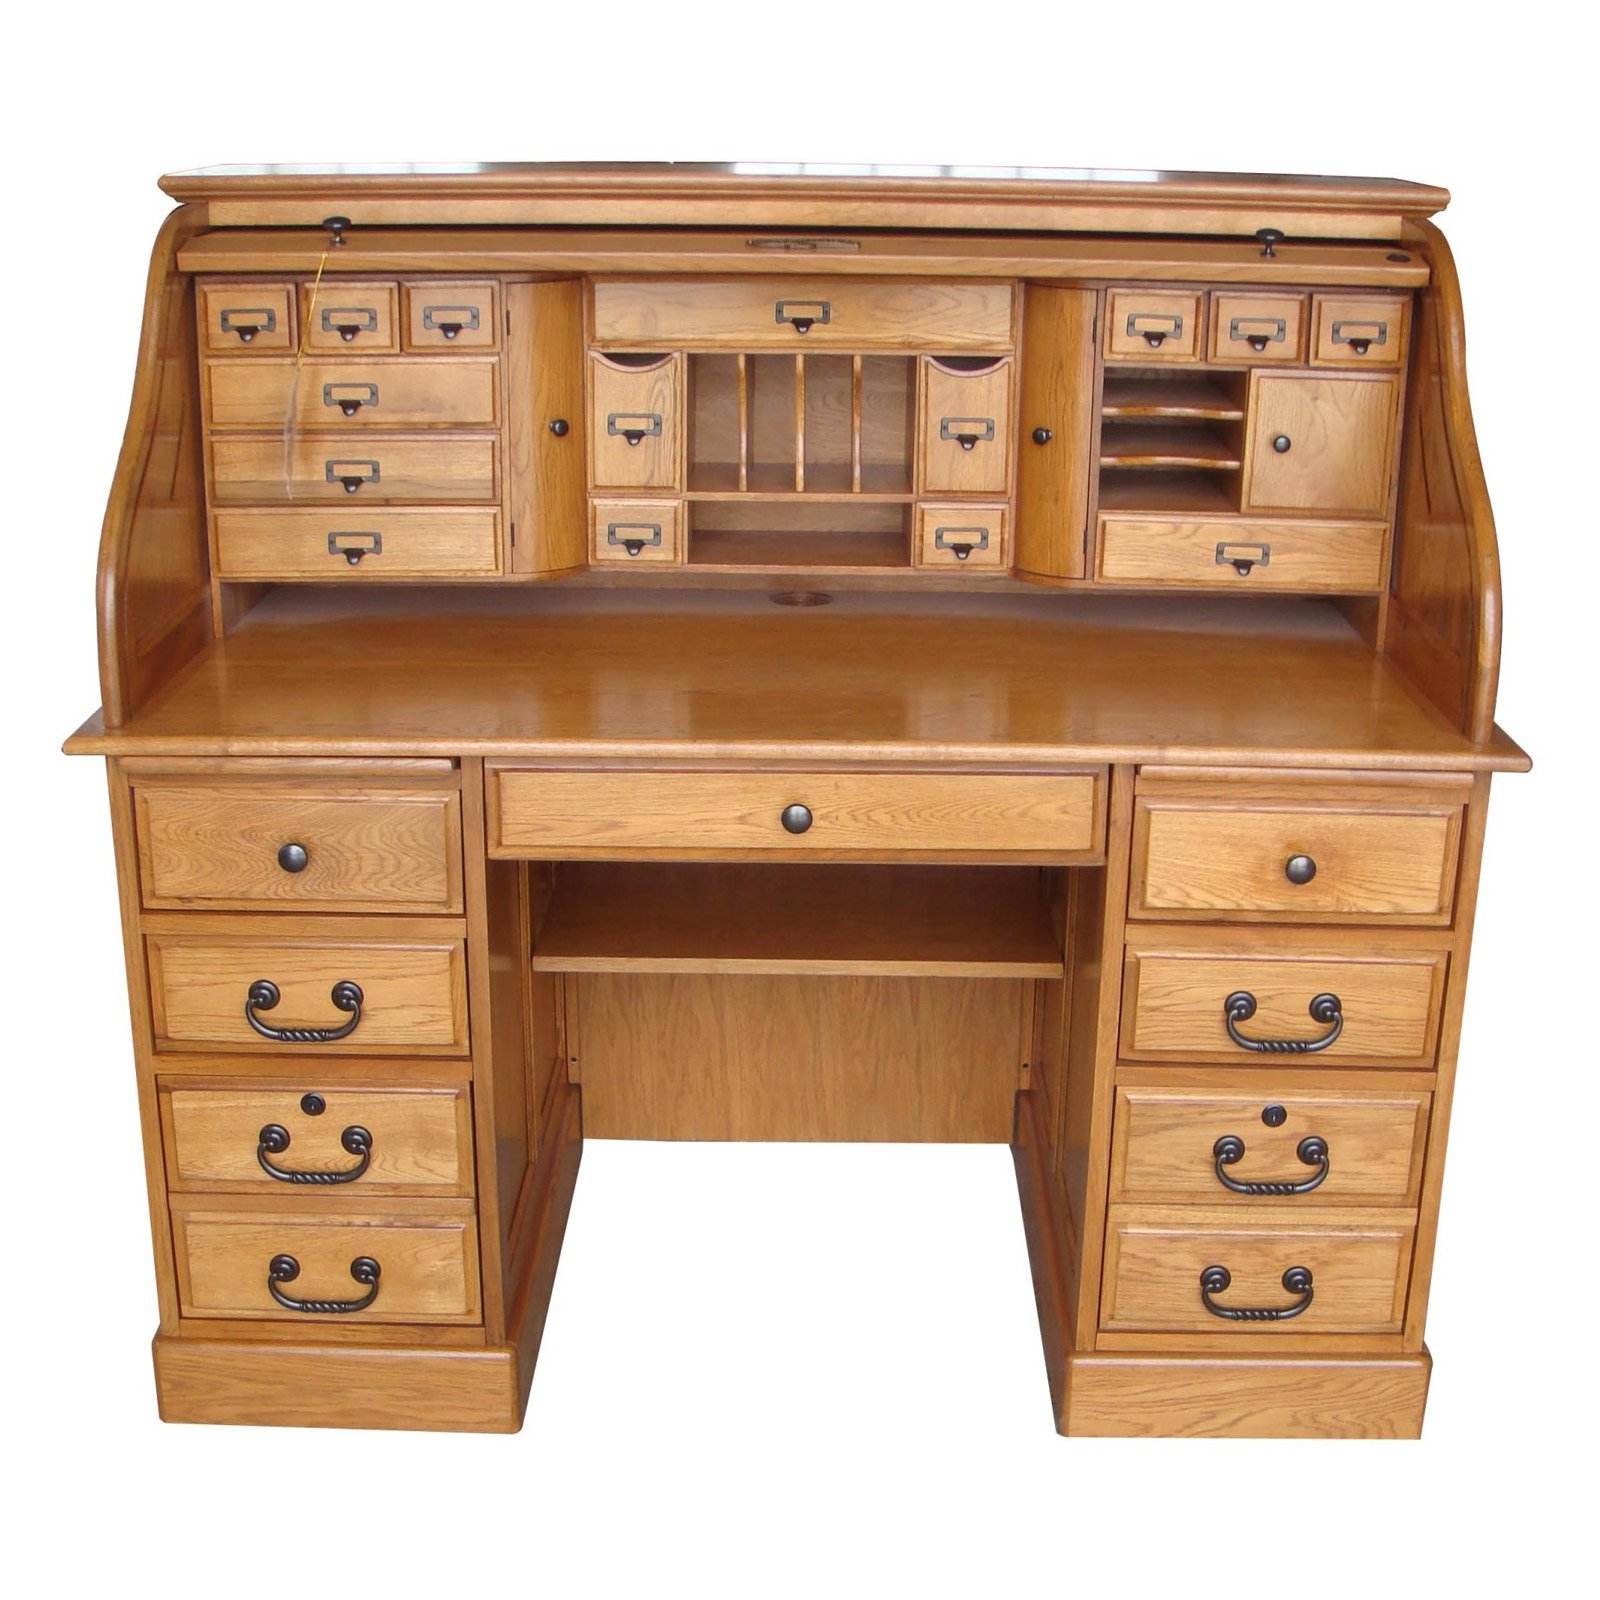 Walmart Home Furniture: Chelsea Home Furniture Marlin 54 In. Deluxe Roll Top Desk